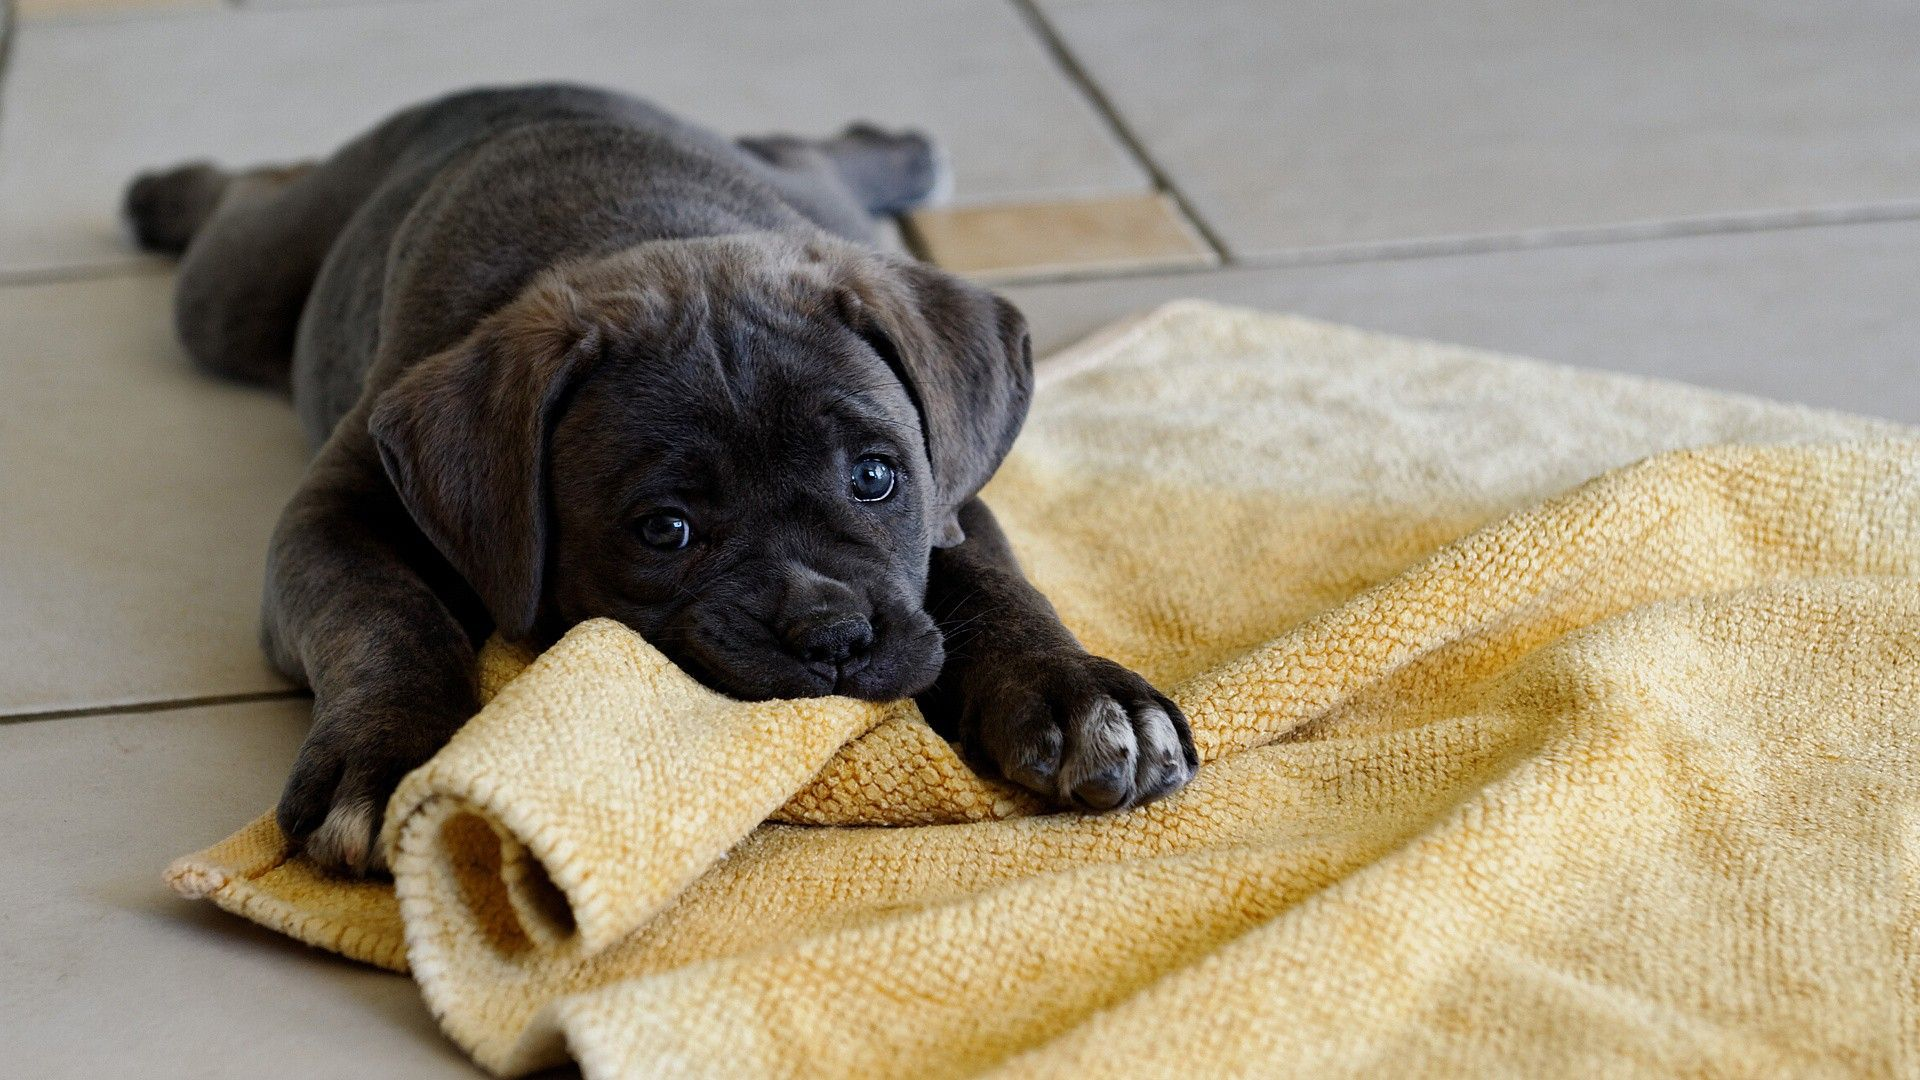 Little Baby Dog Cane Corso Cute Puppy Wallpaper Cute Dogs Images